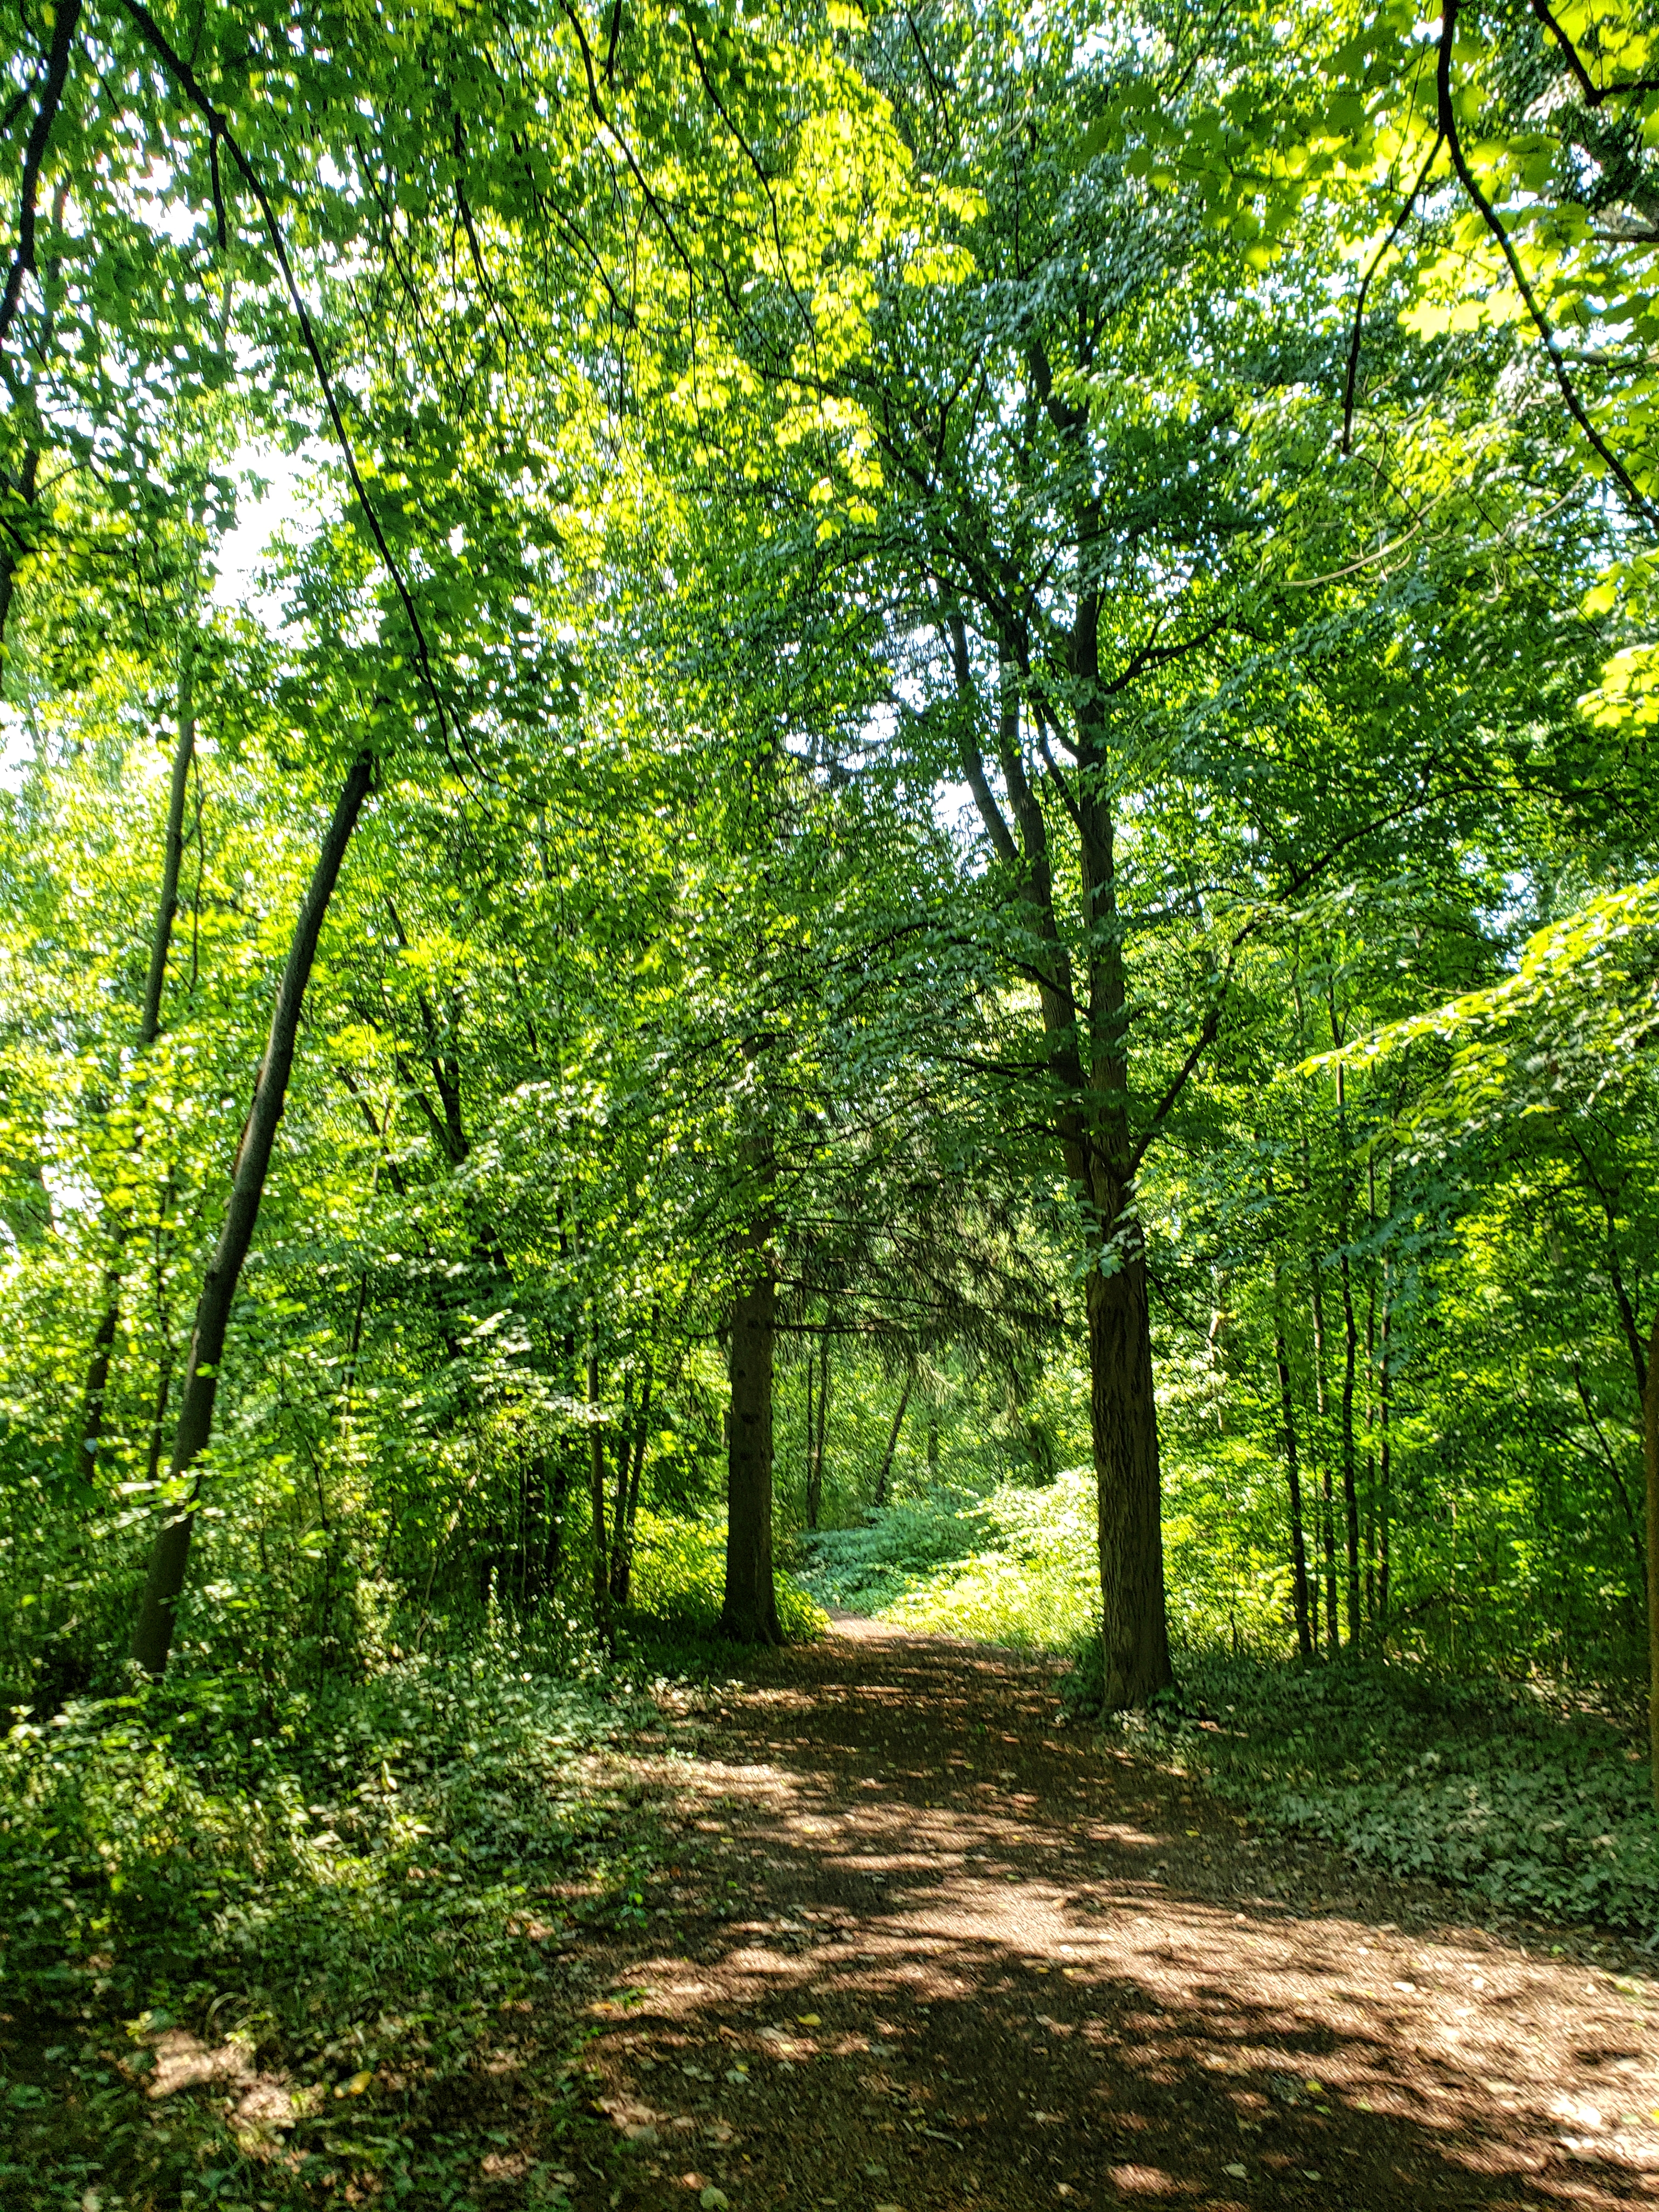 The Don Green Way Nature Trail